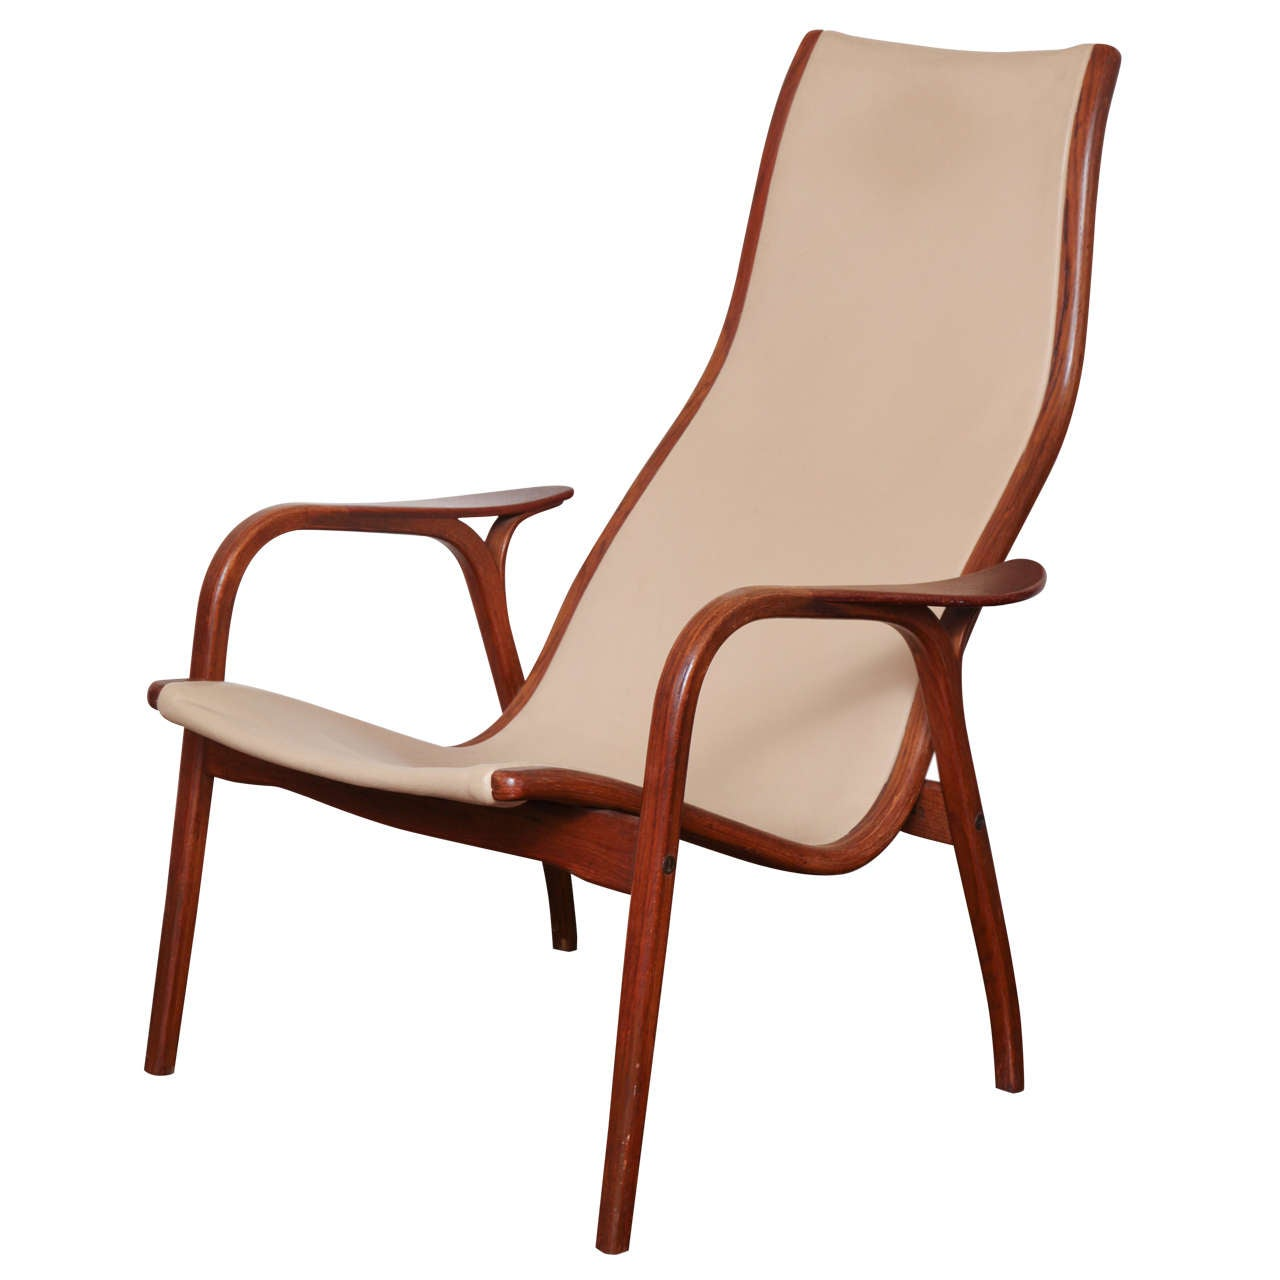 """Lamino"" Teak Arm Chair by Yngve Ekström for Swedese Möbler at 1stdibs"